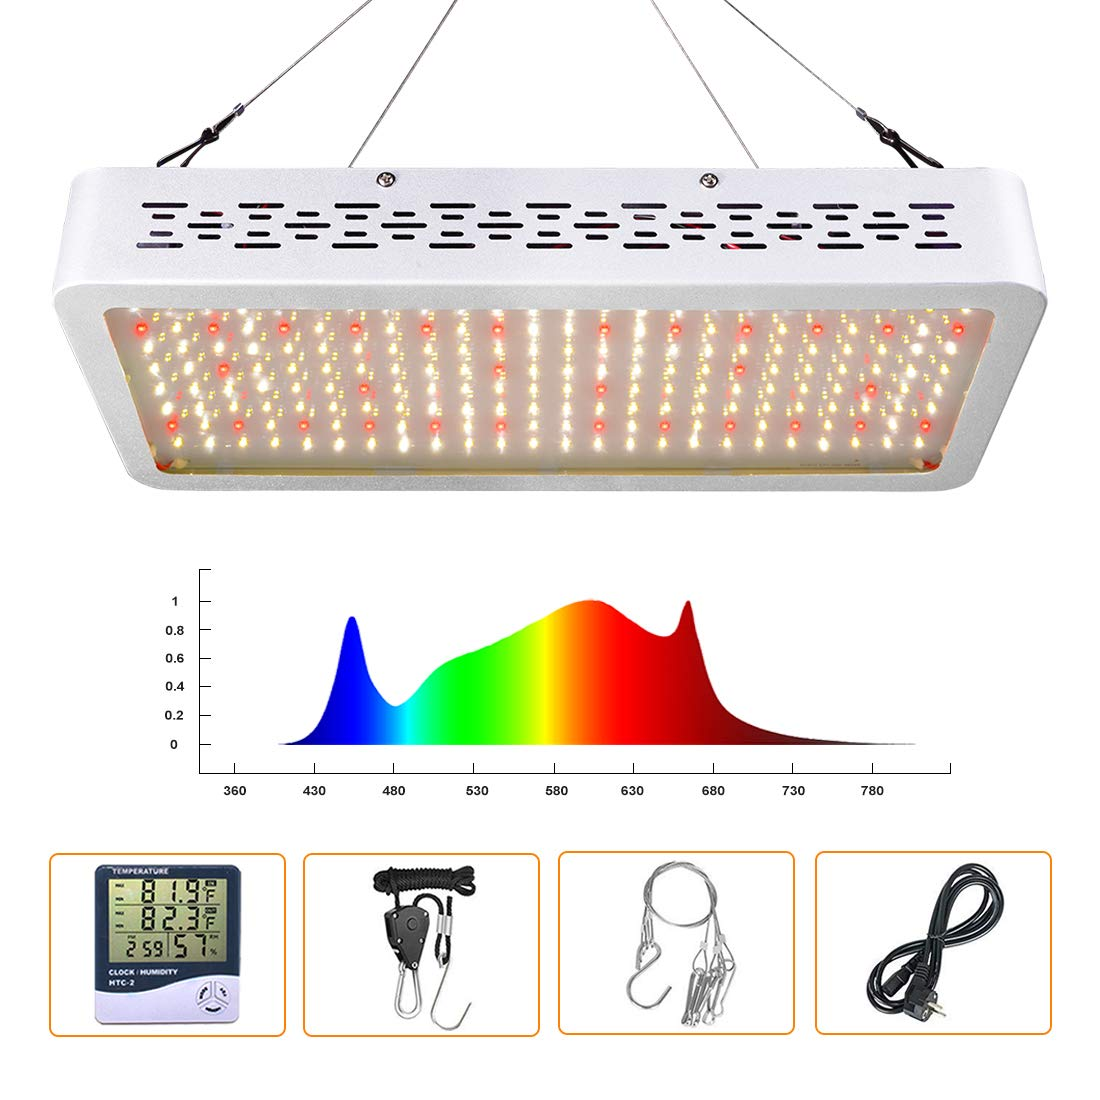 ONEO Led Grow Light 1000W Full Spectrum Sunlight 3500K White and 660nm Red Added Grow Lights for Indoor Plants, Better for Full Growth Flowering Fruiting Veg Seedling with Thermometer Hygrometer by ONEO (Image #1)